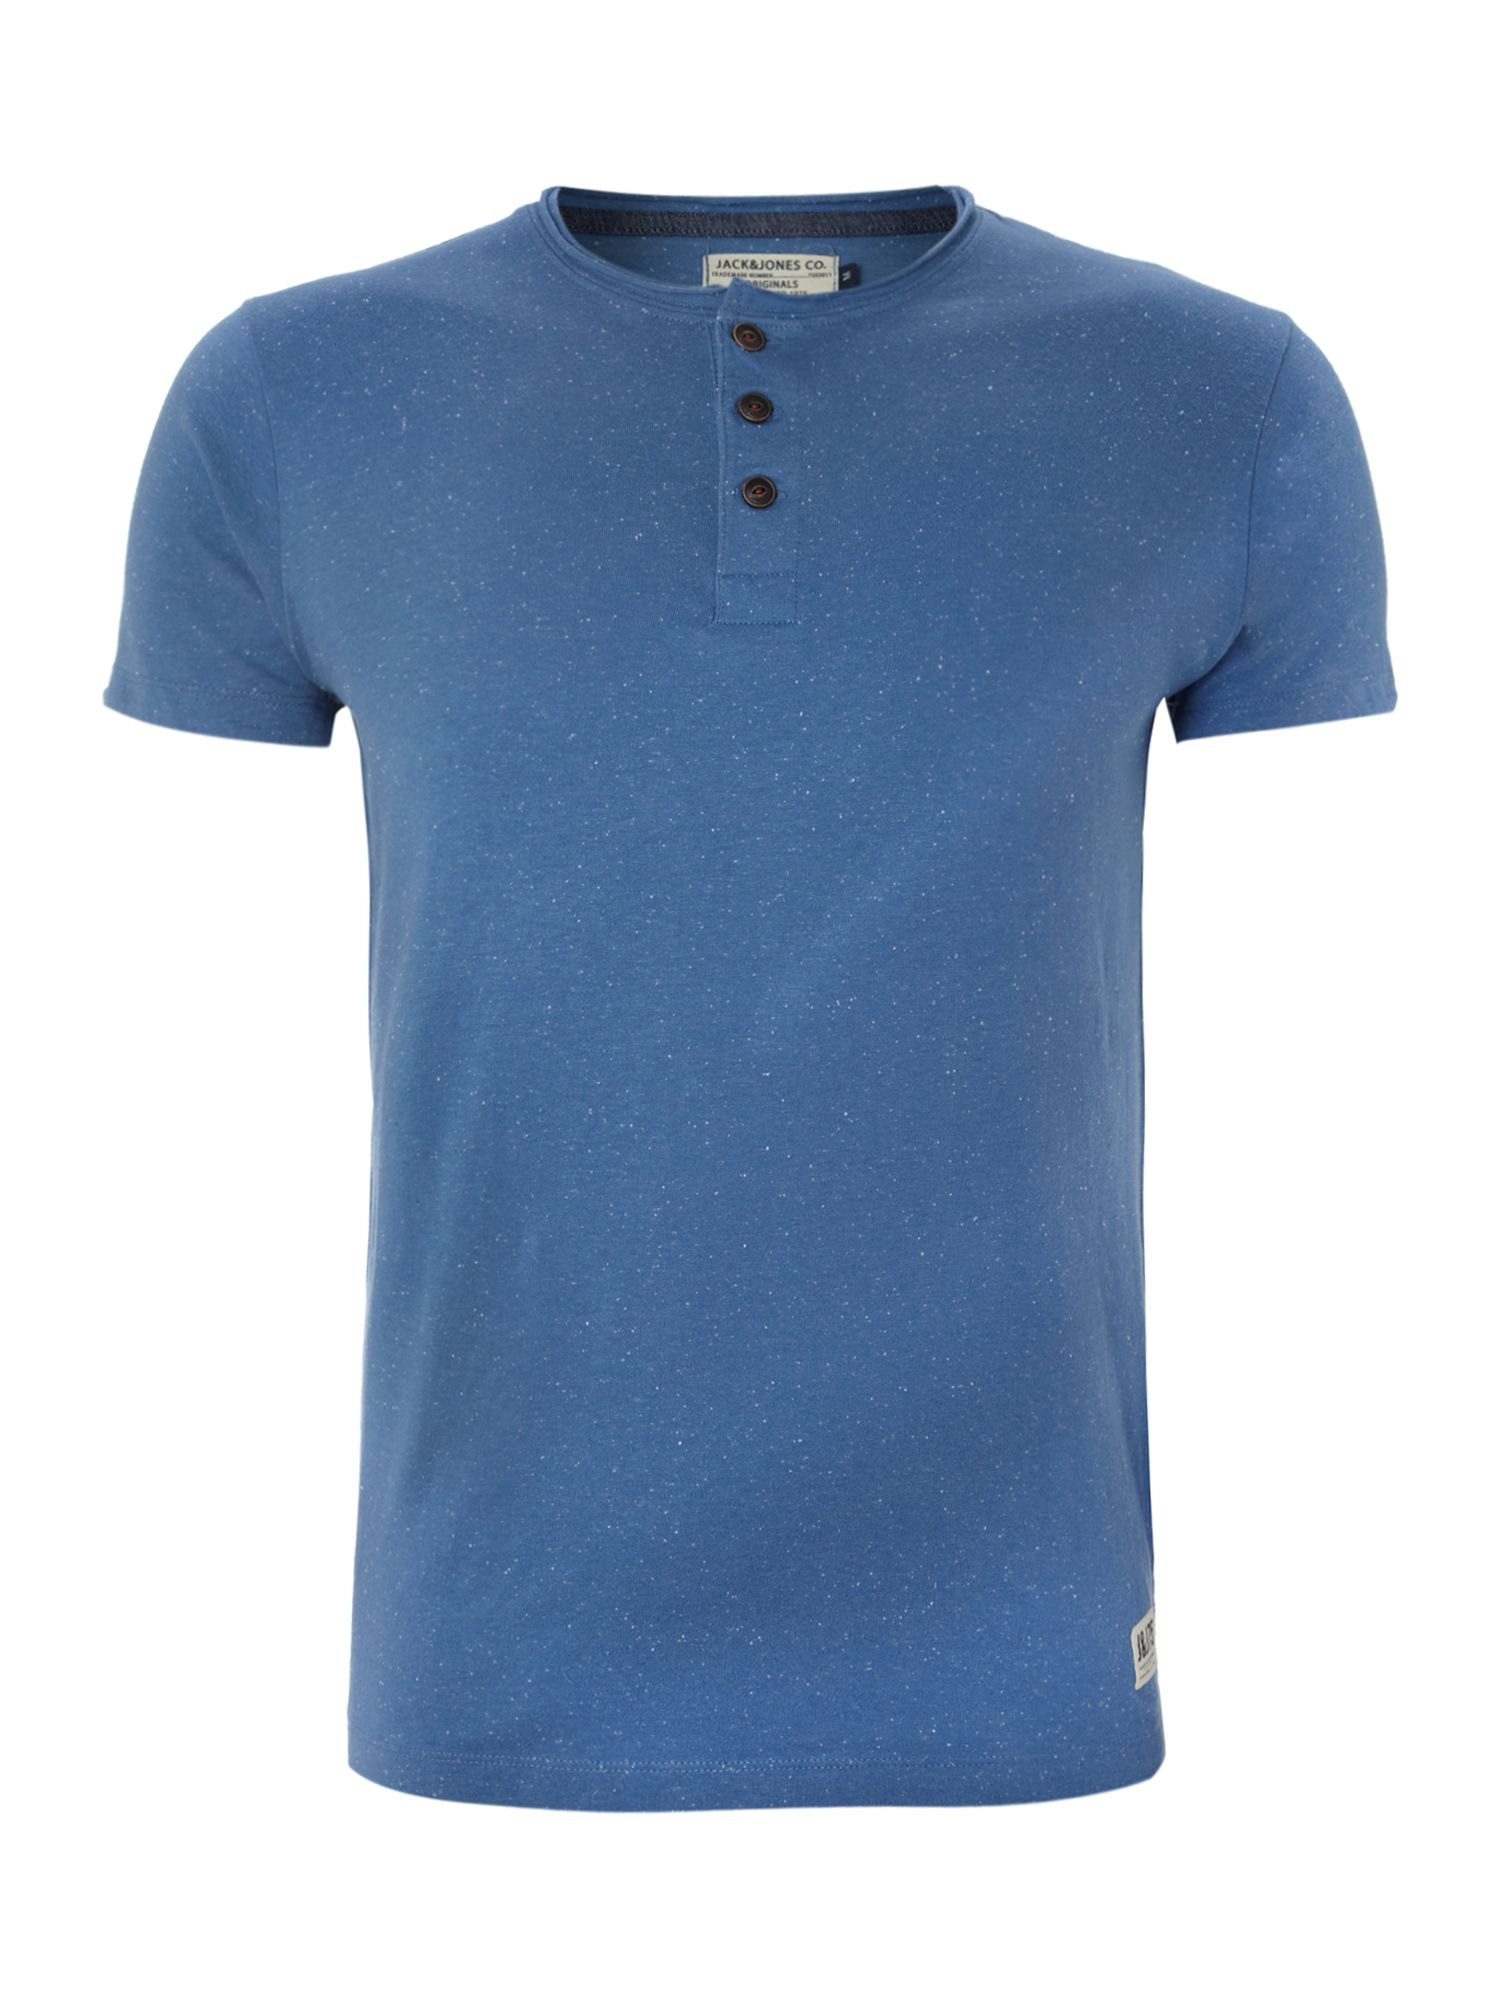 Short-sleeved henley neck T-shirt